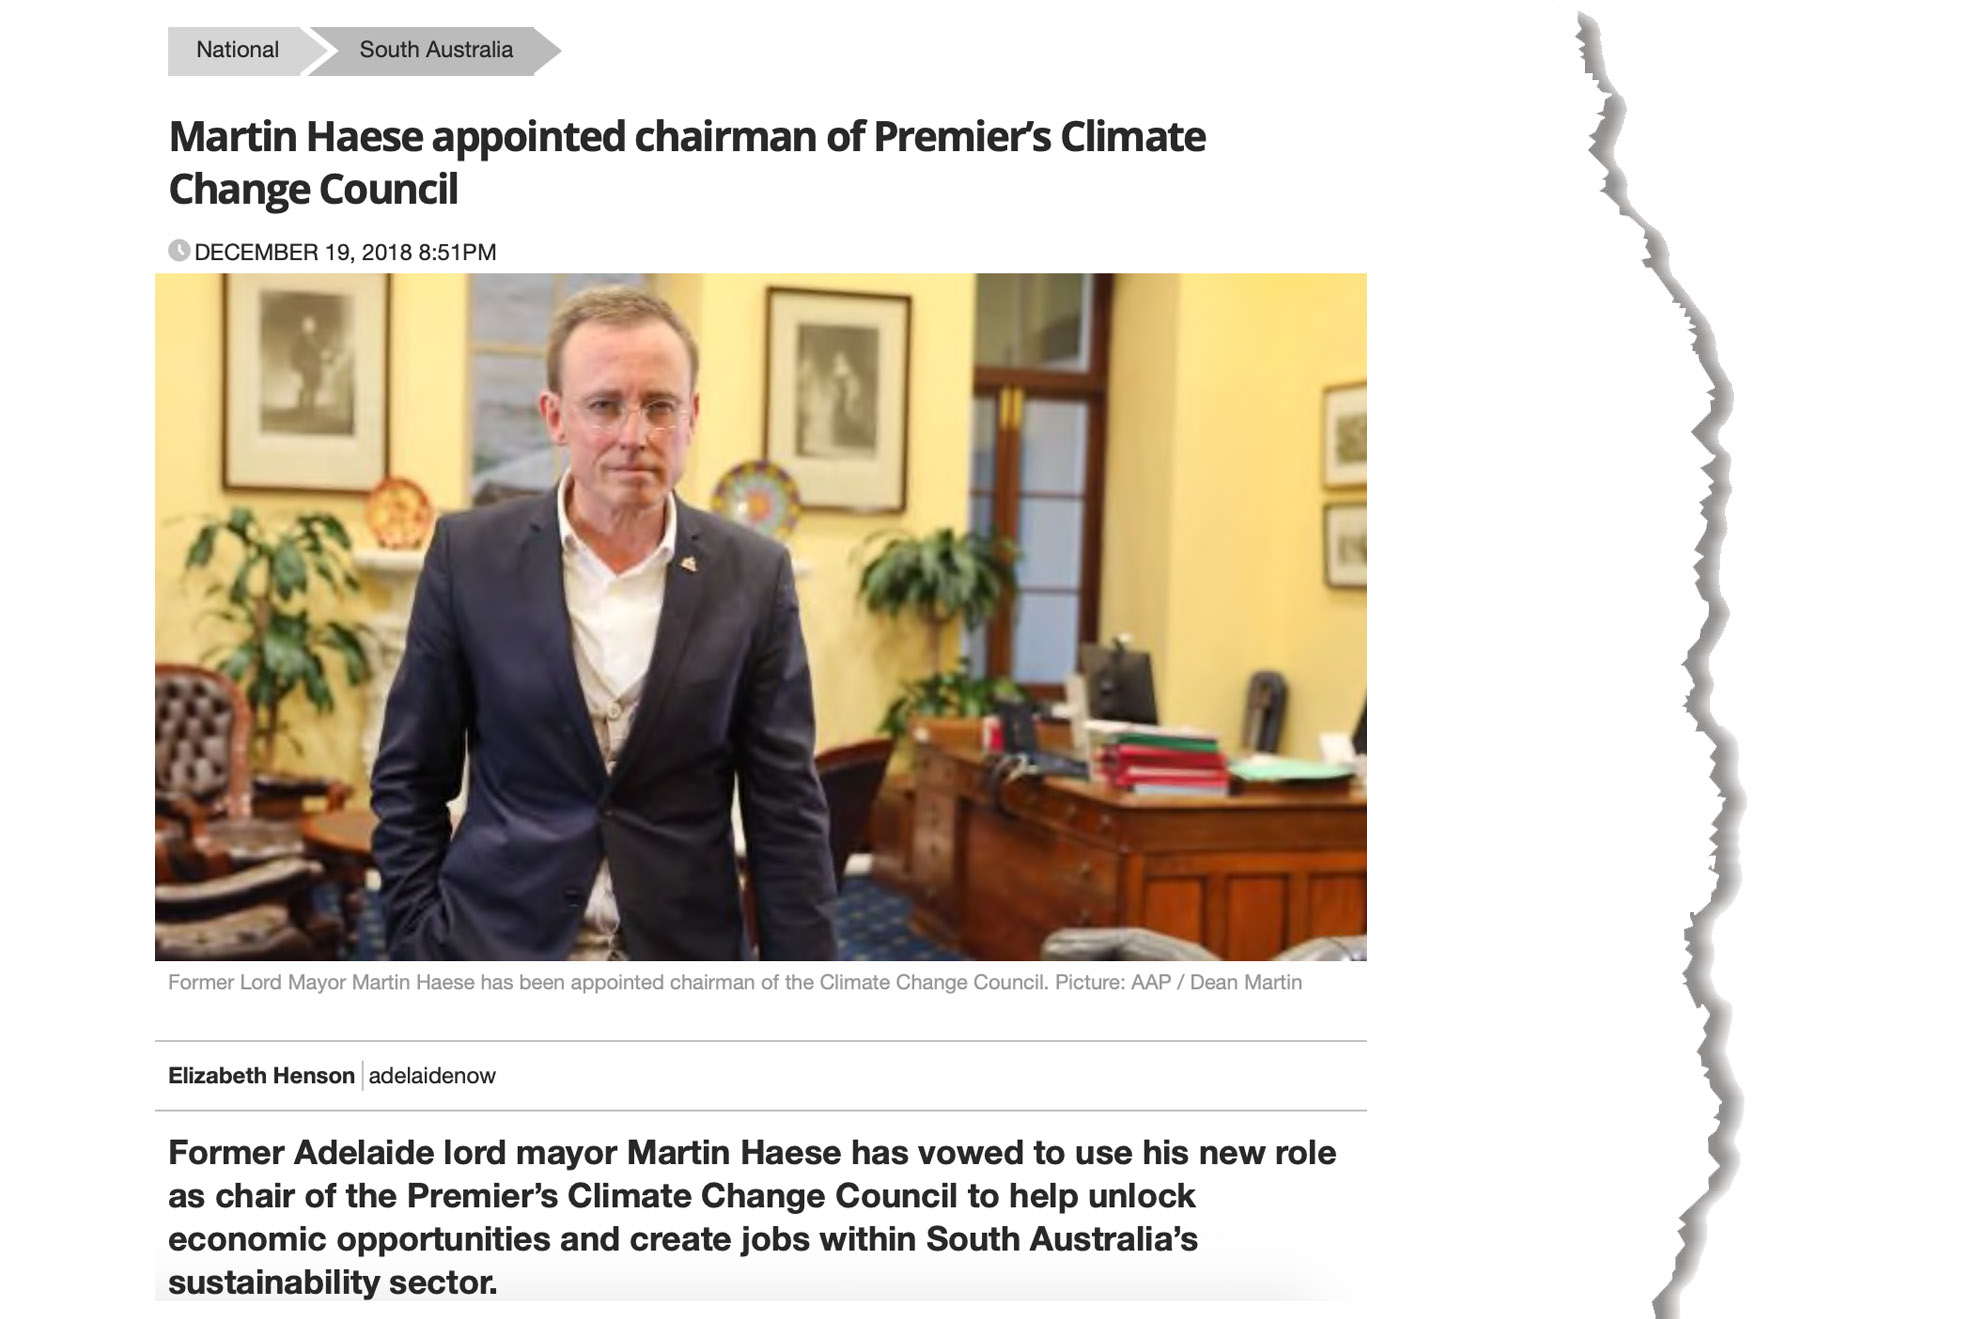 martin-haese-premiers-climate-change-council-news-com-au-19-december-2018